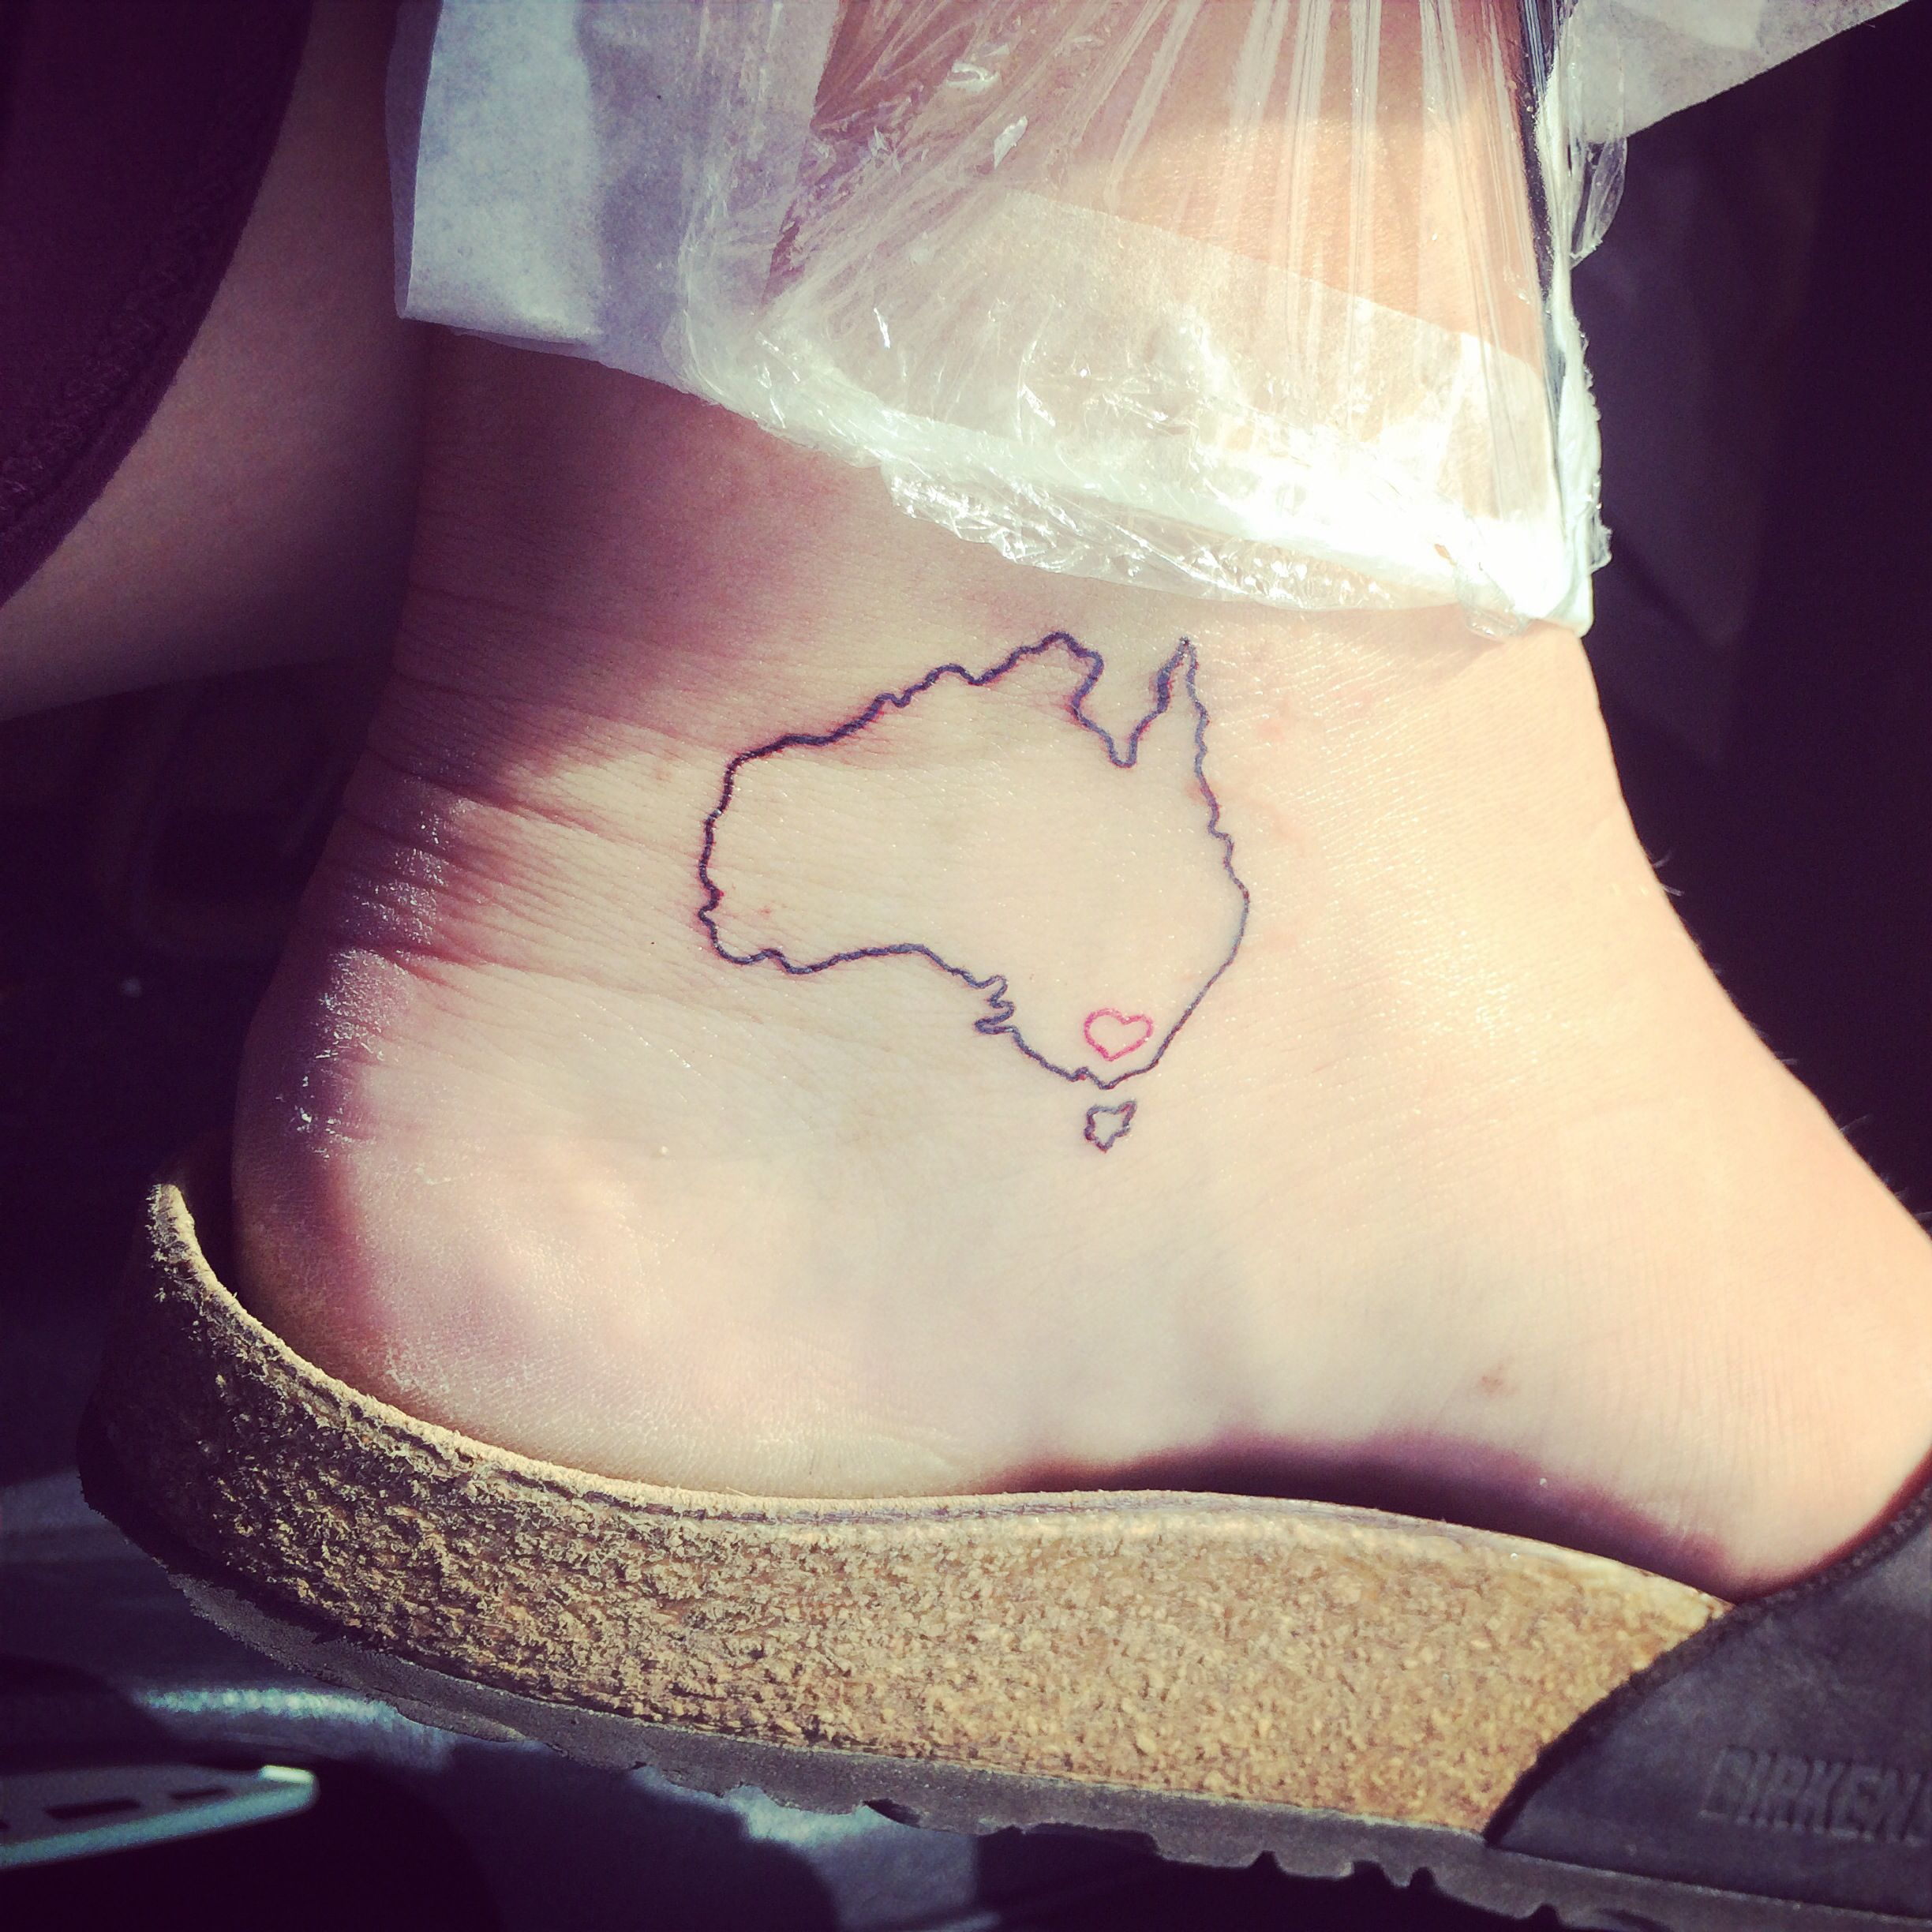 Tattoo Australian Map Small Tattoos Pair Tattoos Tattoos